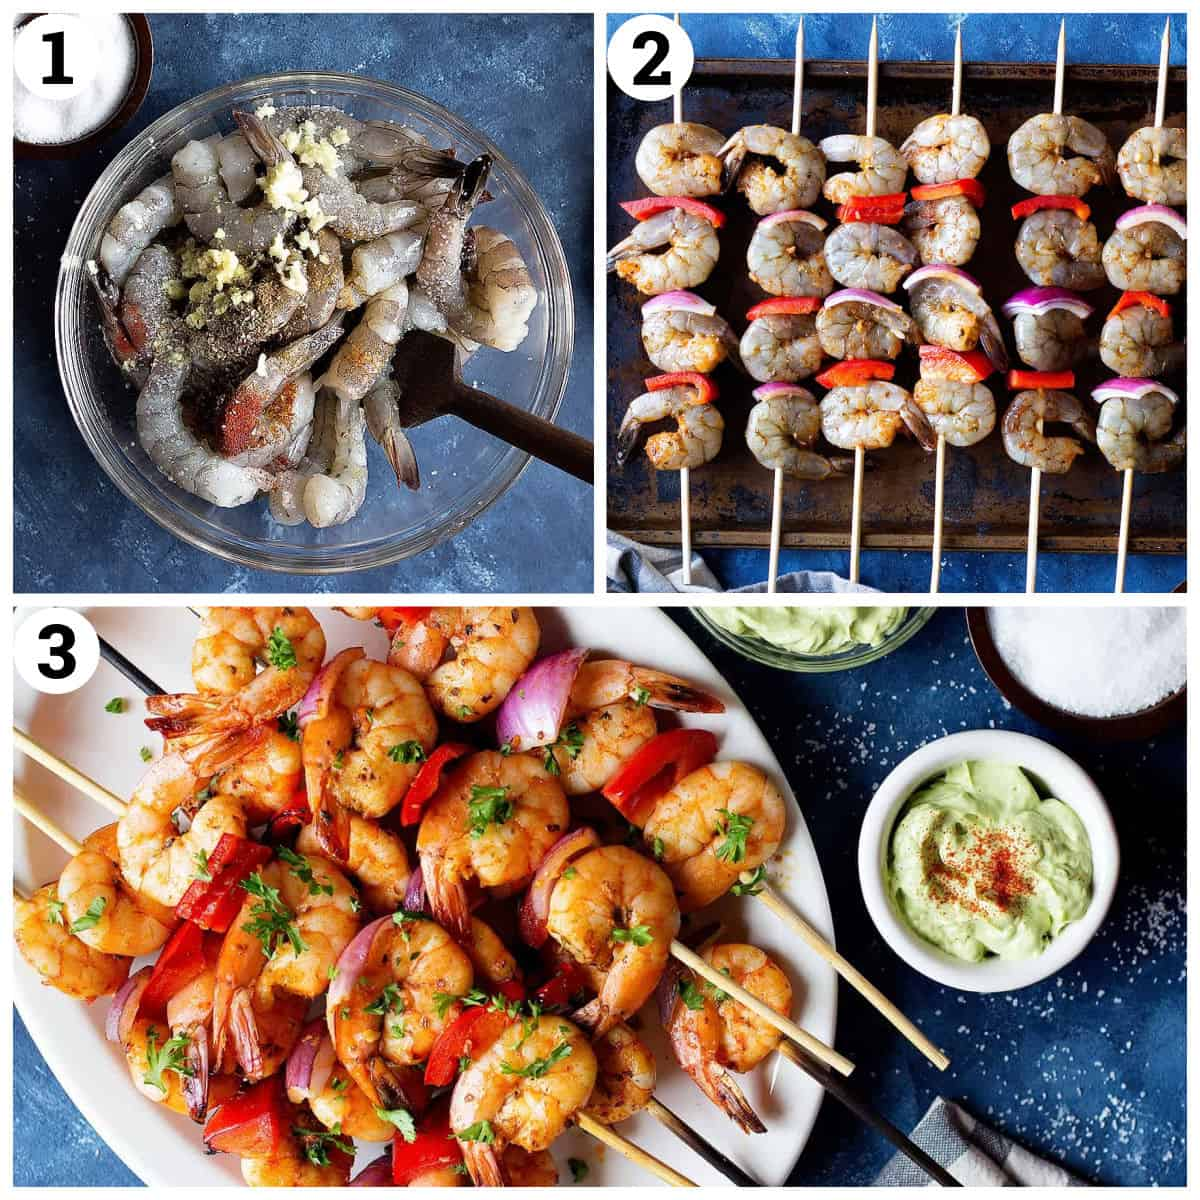 marinate the shrimp, preheat the grill and grill the shrimp kabobs.